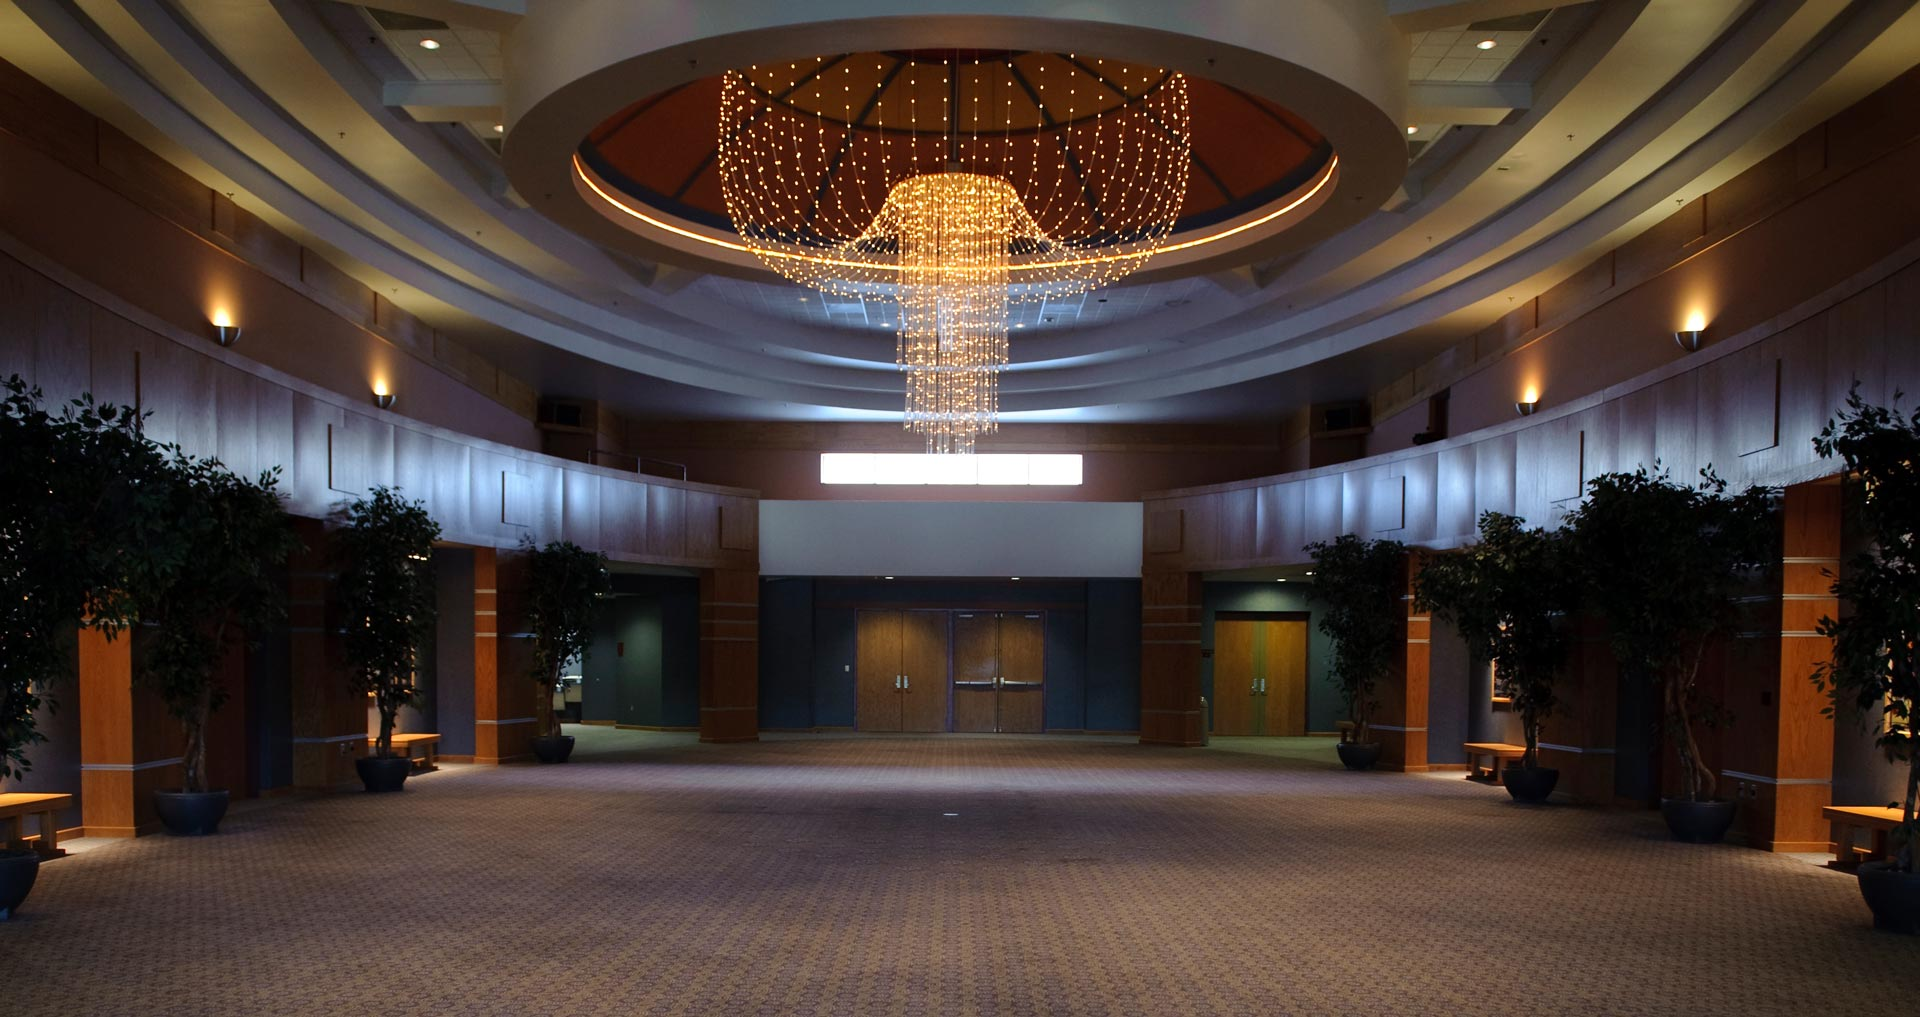 The Grand Hall and draping chandelier